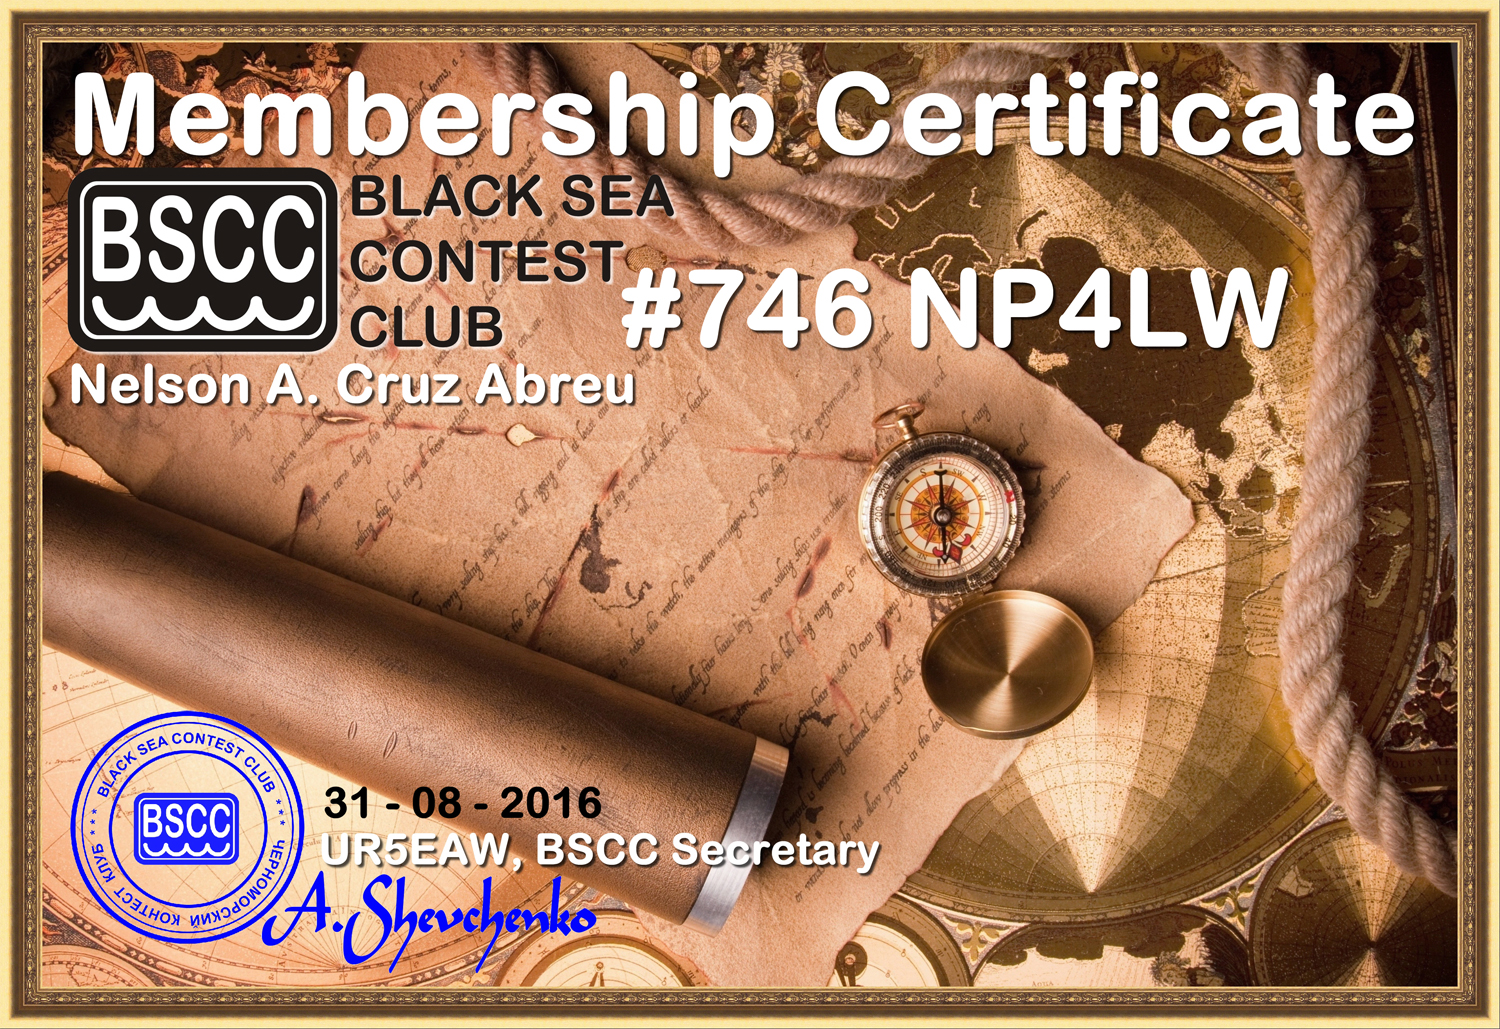 50th country-member of the Black Sea Contest Club